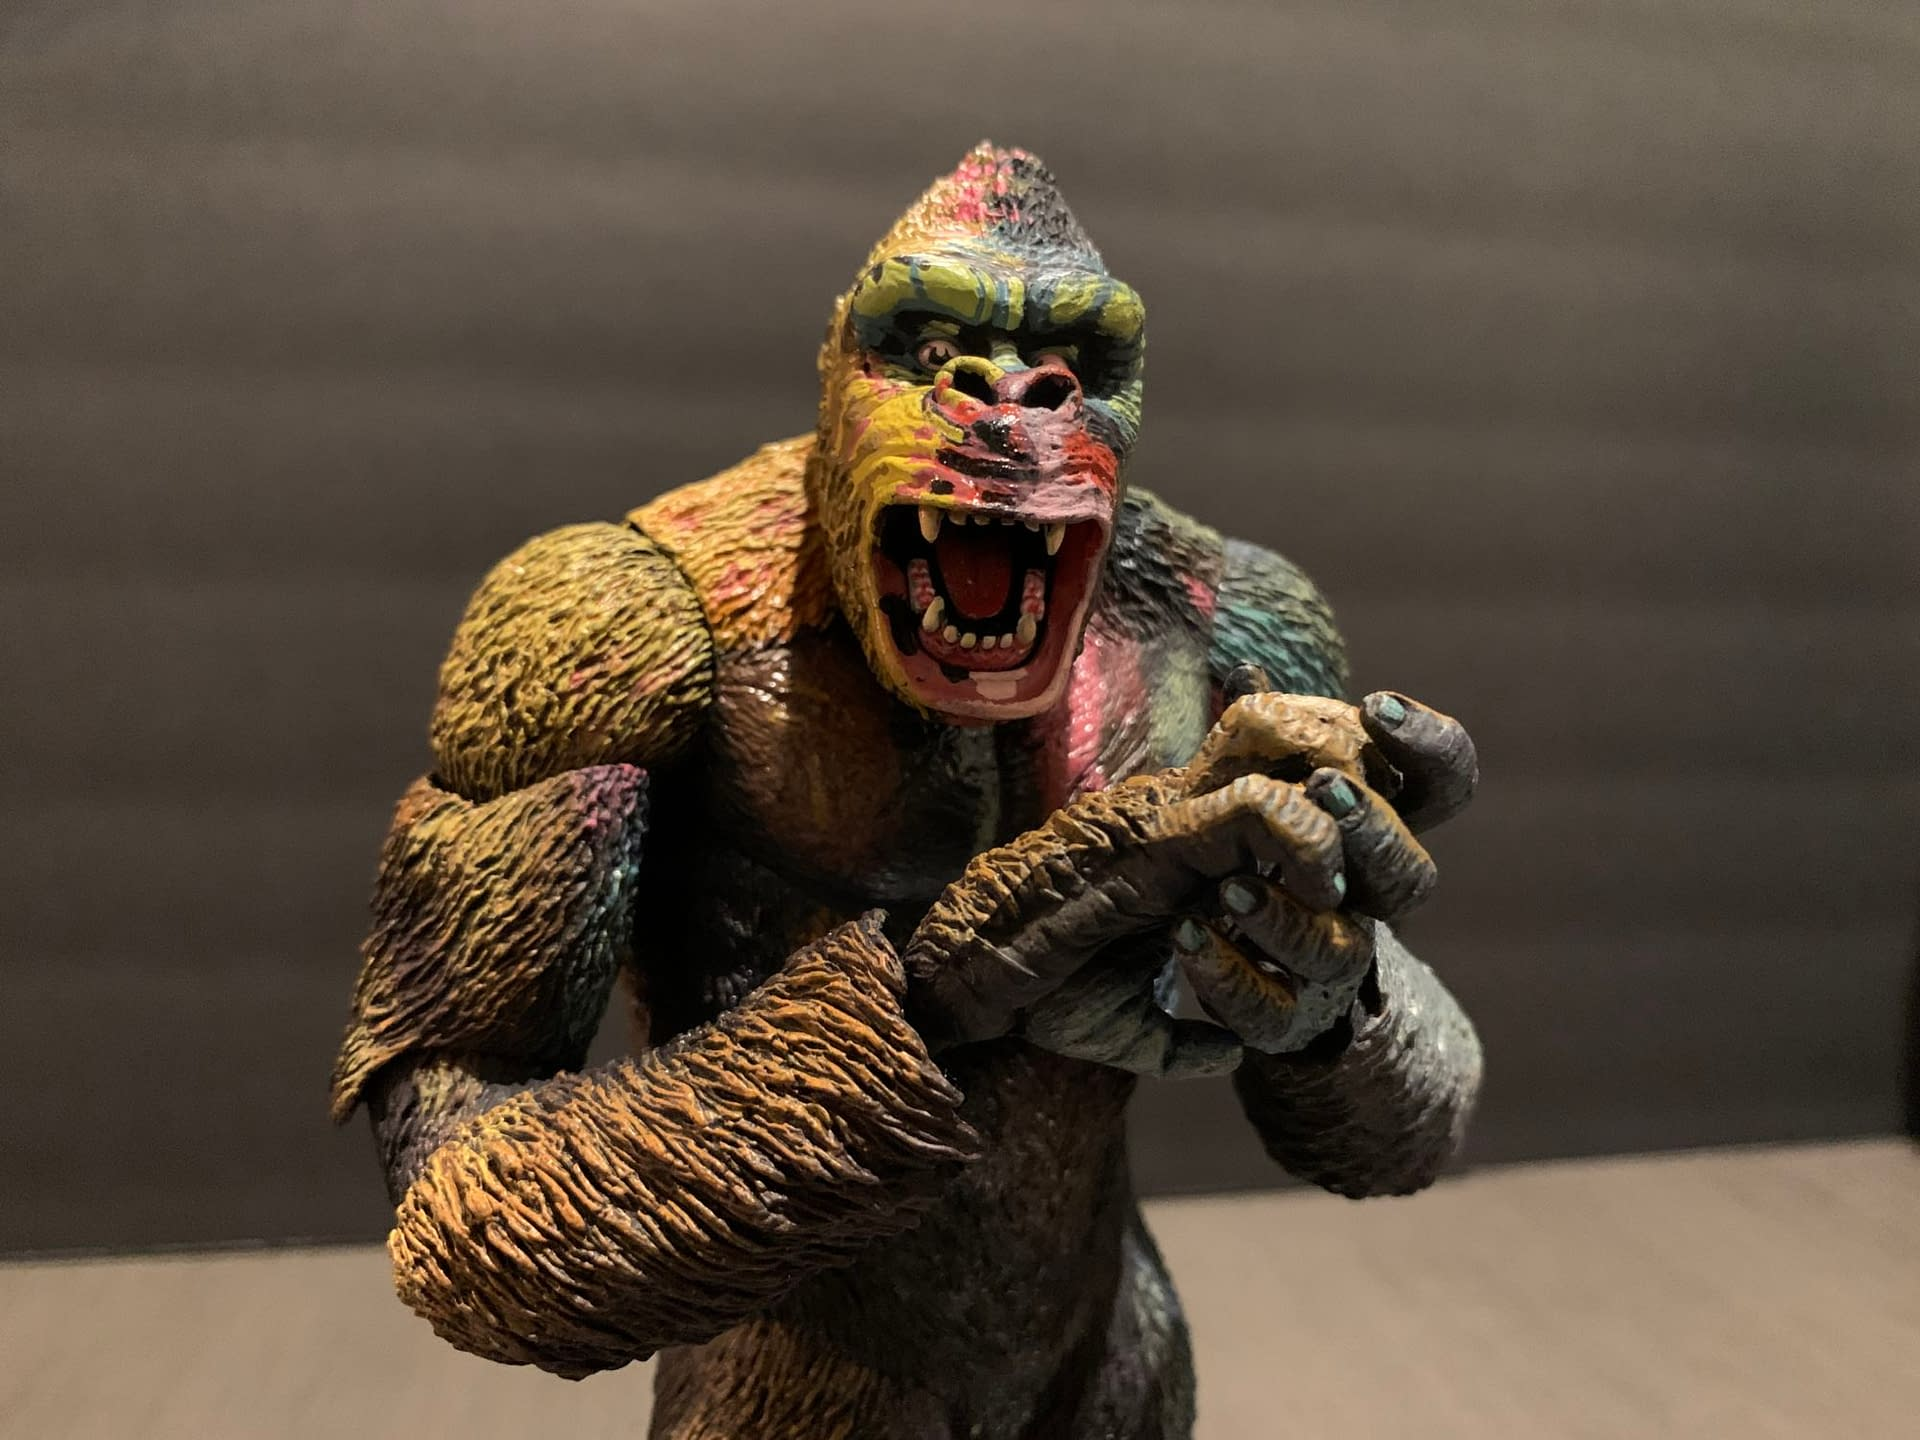 NECA's New Kong Figure Is Hitting Walmarts, Let's Take A Look